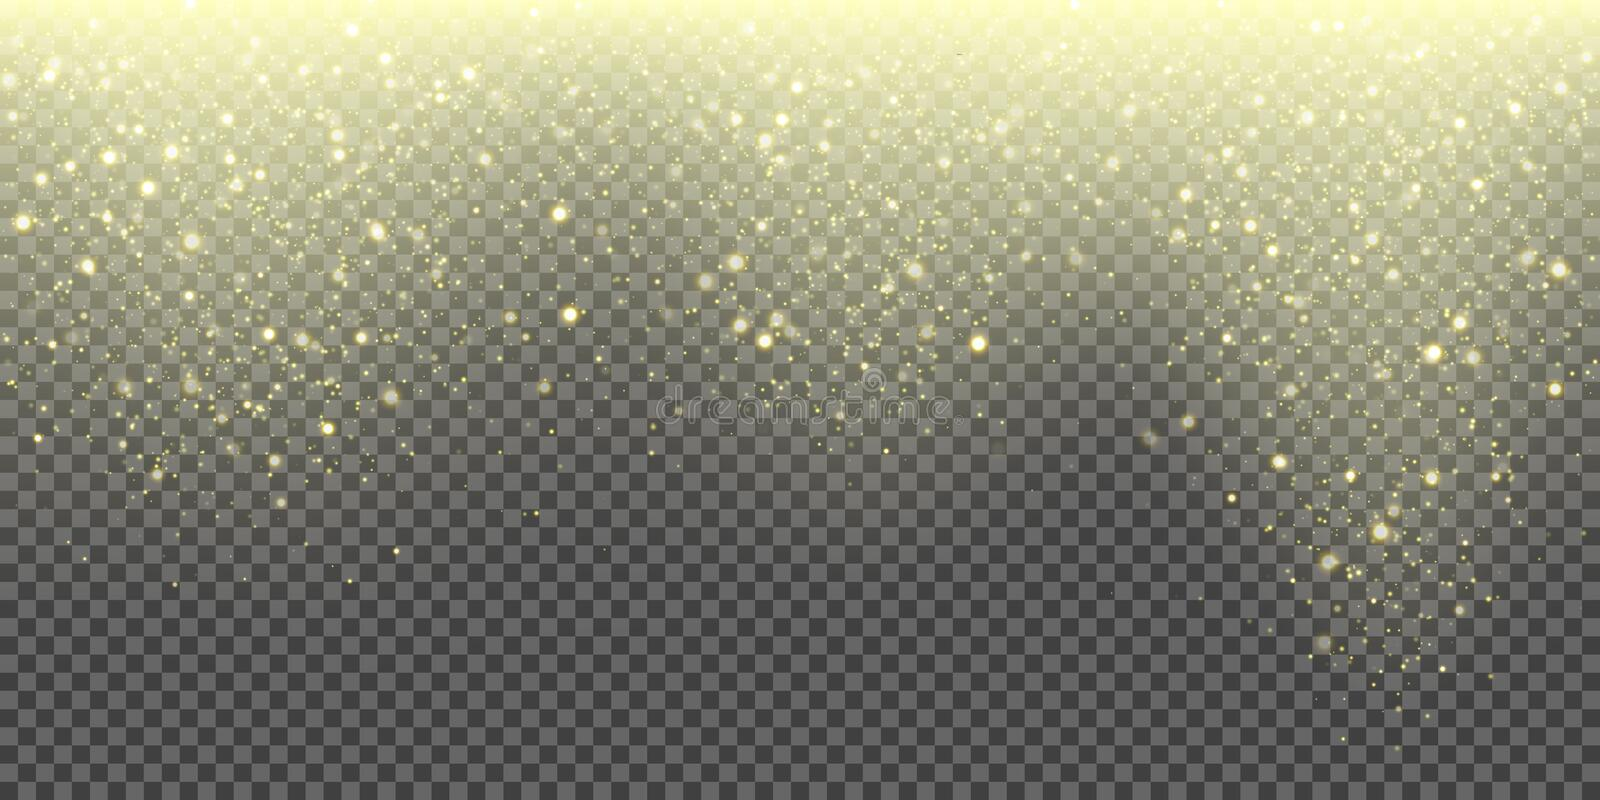 Snow falling vector background of golden sparkling snowfall and glittering snowflakes. Vector abstract glowing gold glitter. Particles pattern background for royalty free illustration